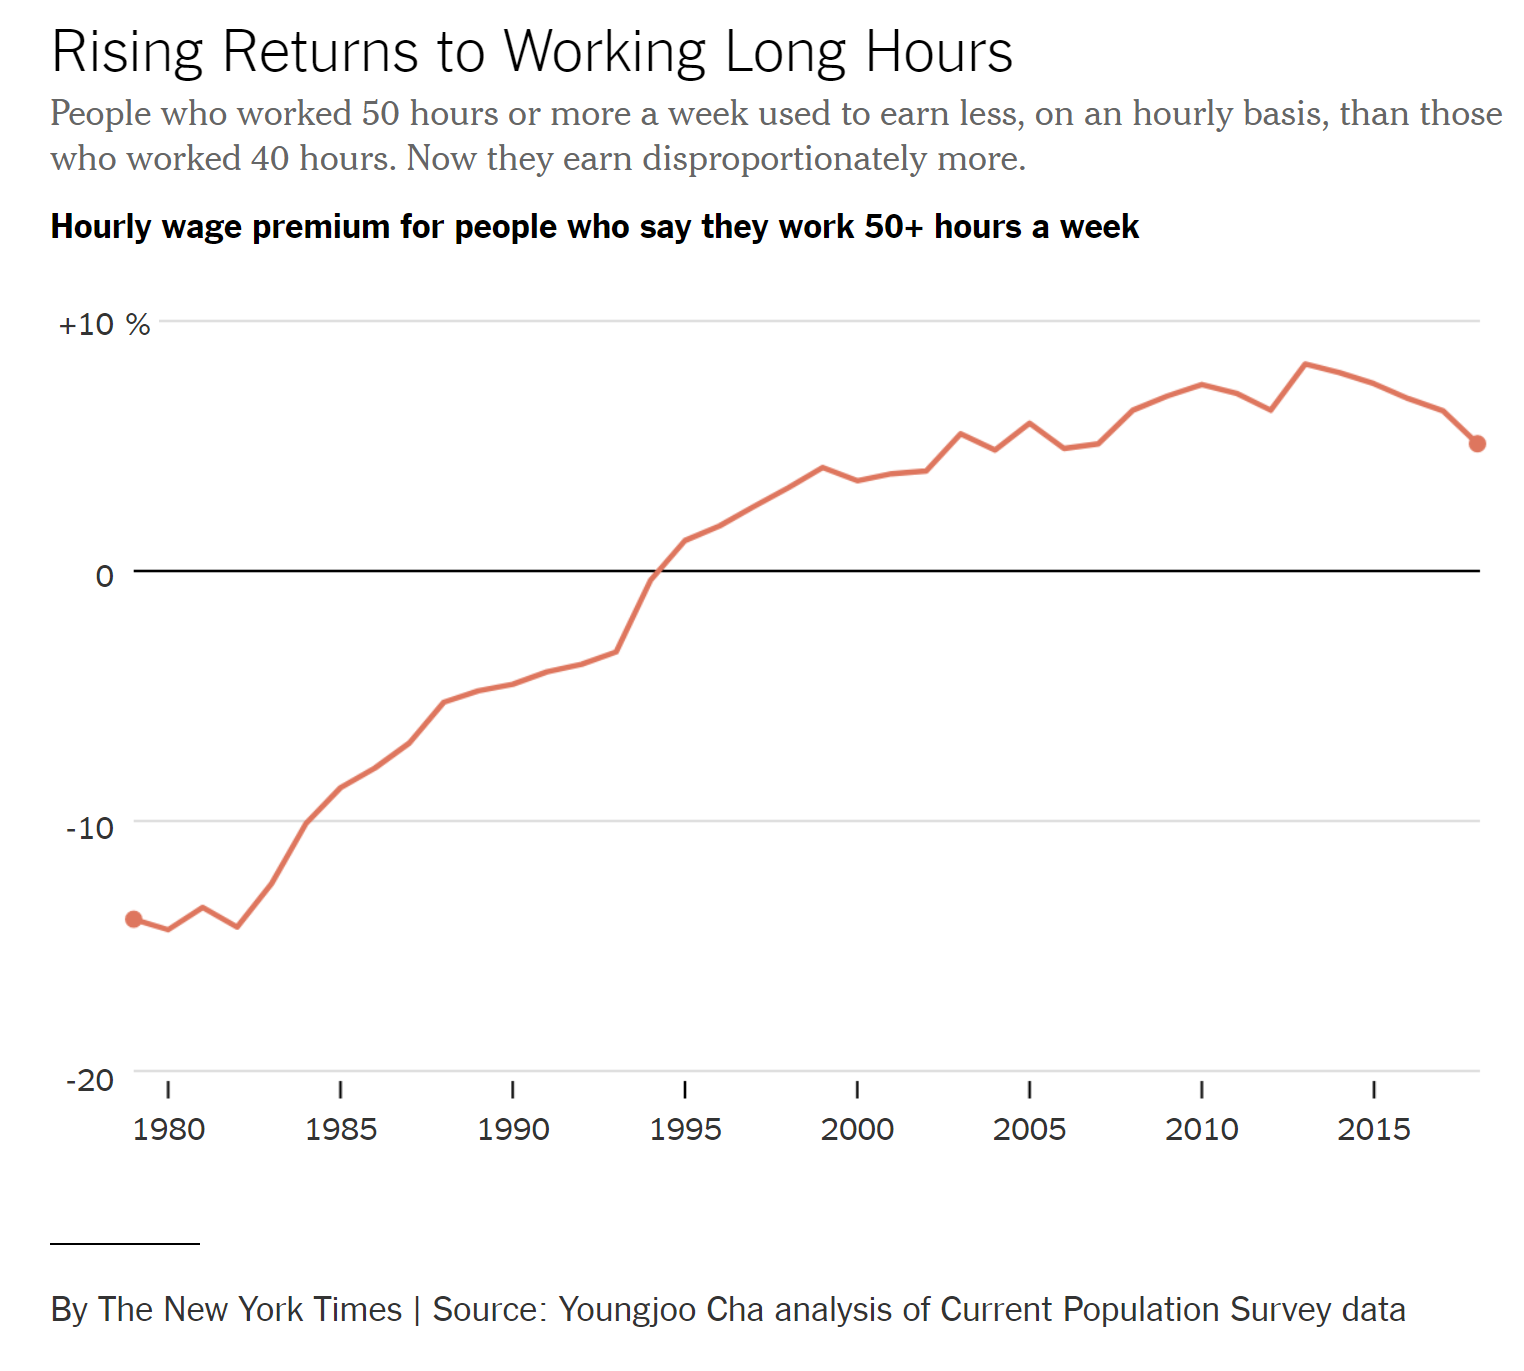 NYT Rising Returns to Working Long Hours